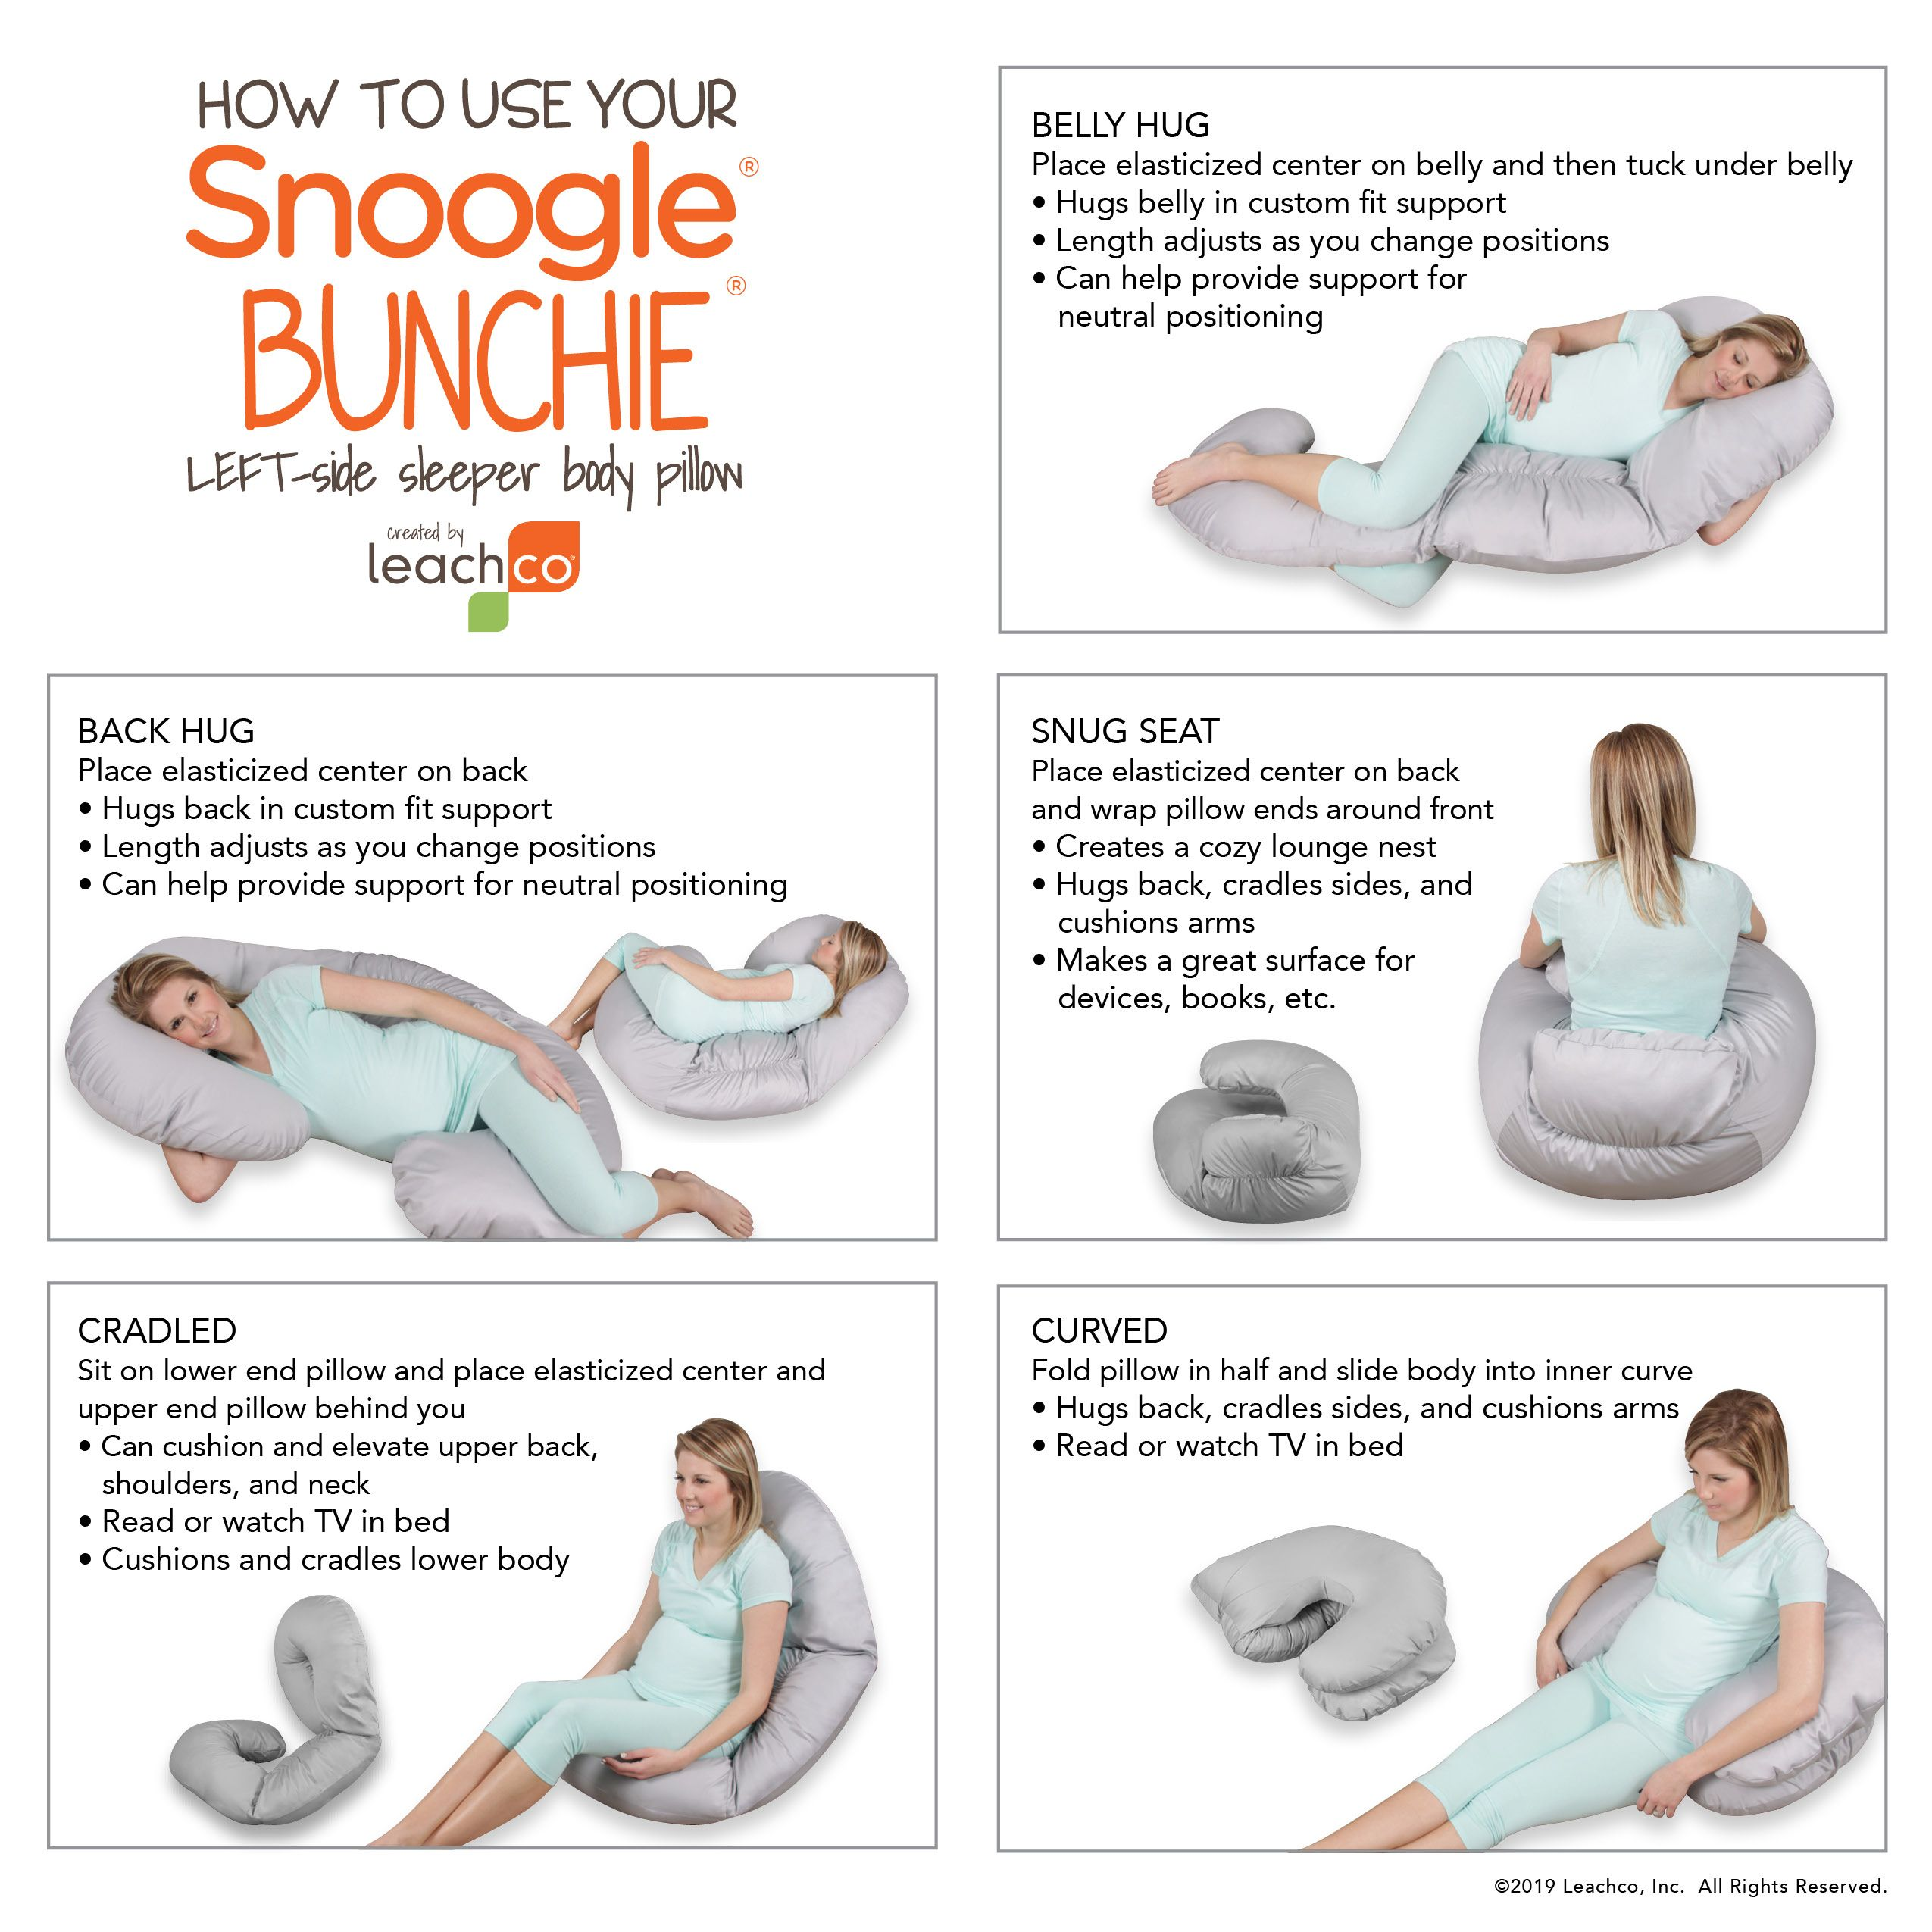 Snoogle Bunchie In 2020 Postpartum Care Kit Snoogle Body Pillow